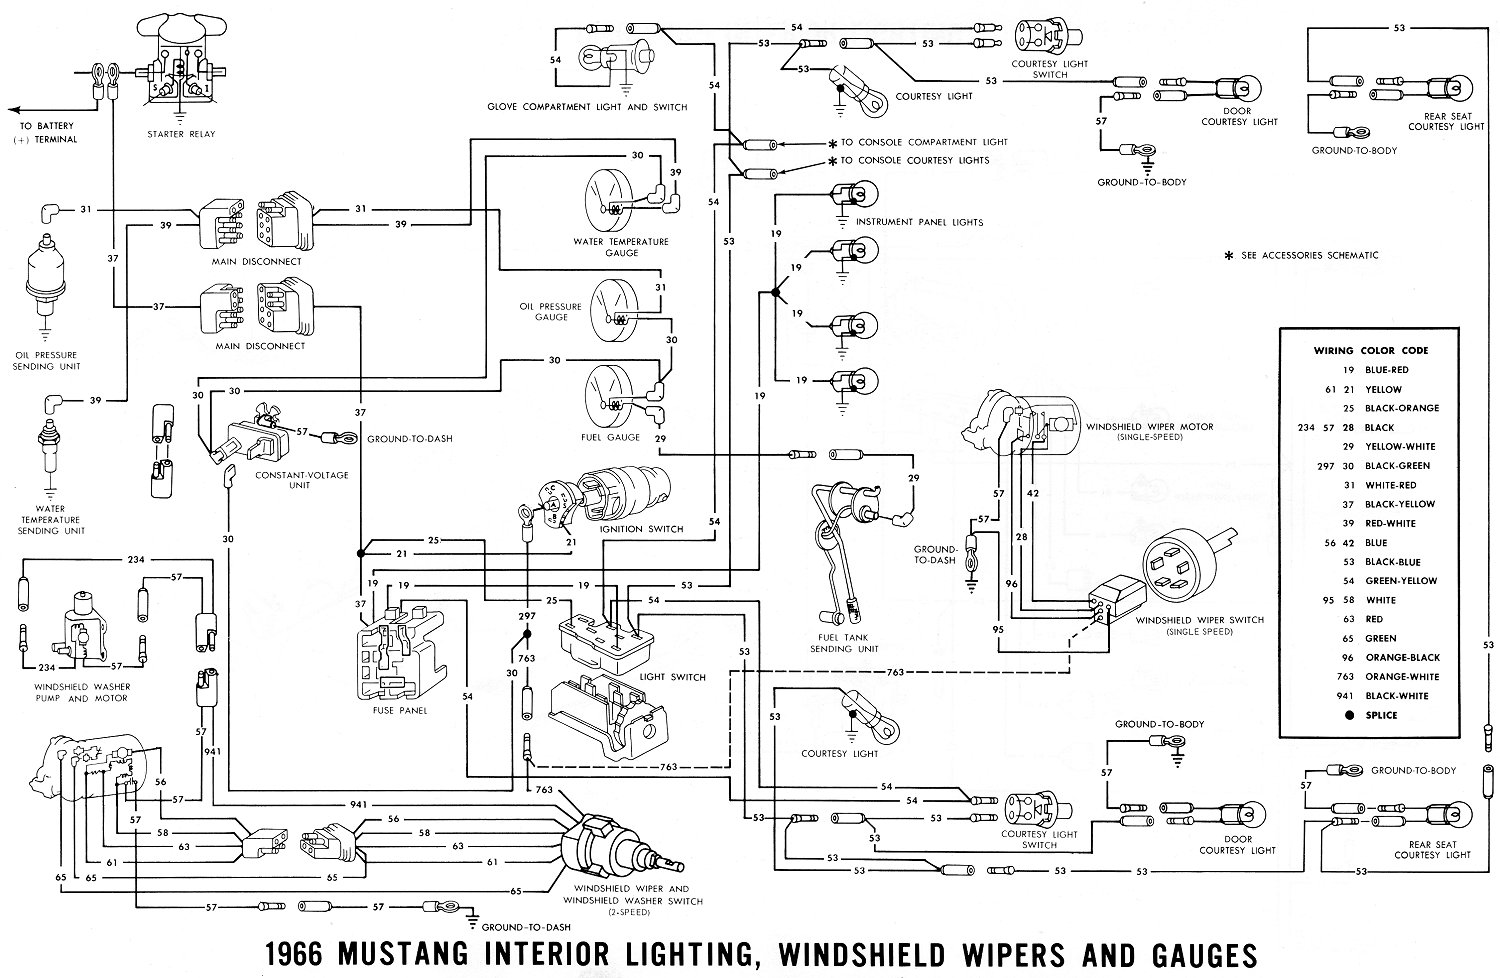 hight resolution of 1966 mustang wiring diagrams average joe restoration 1965 mustang wiring diagram 1966 mustang heater wiring diagram